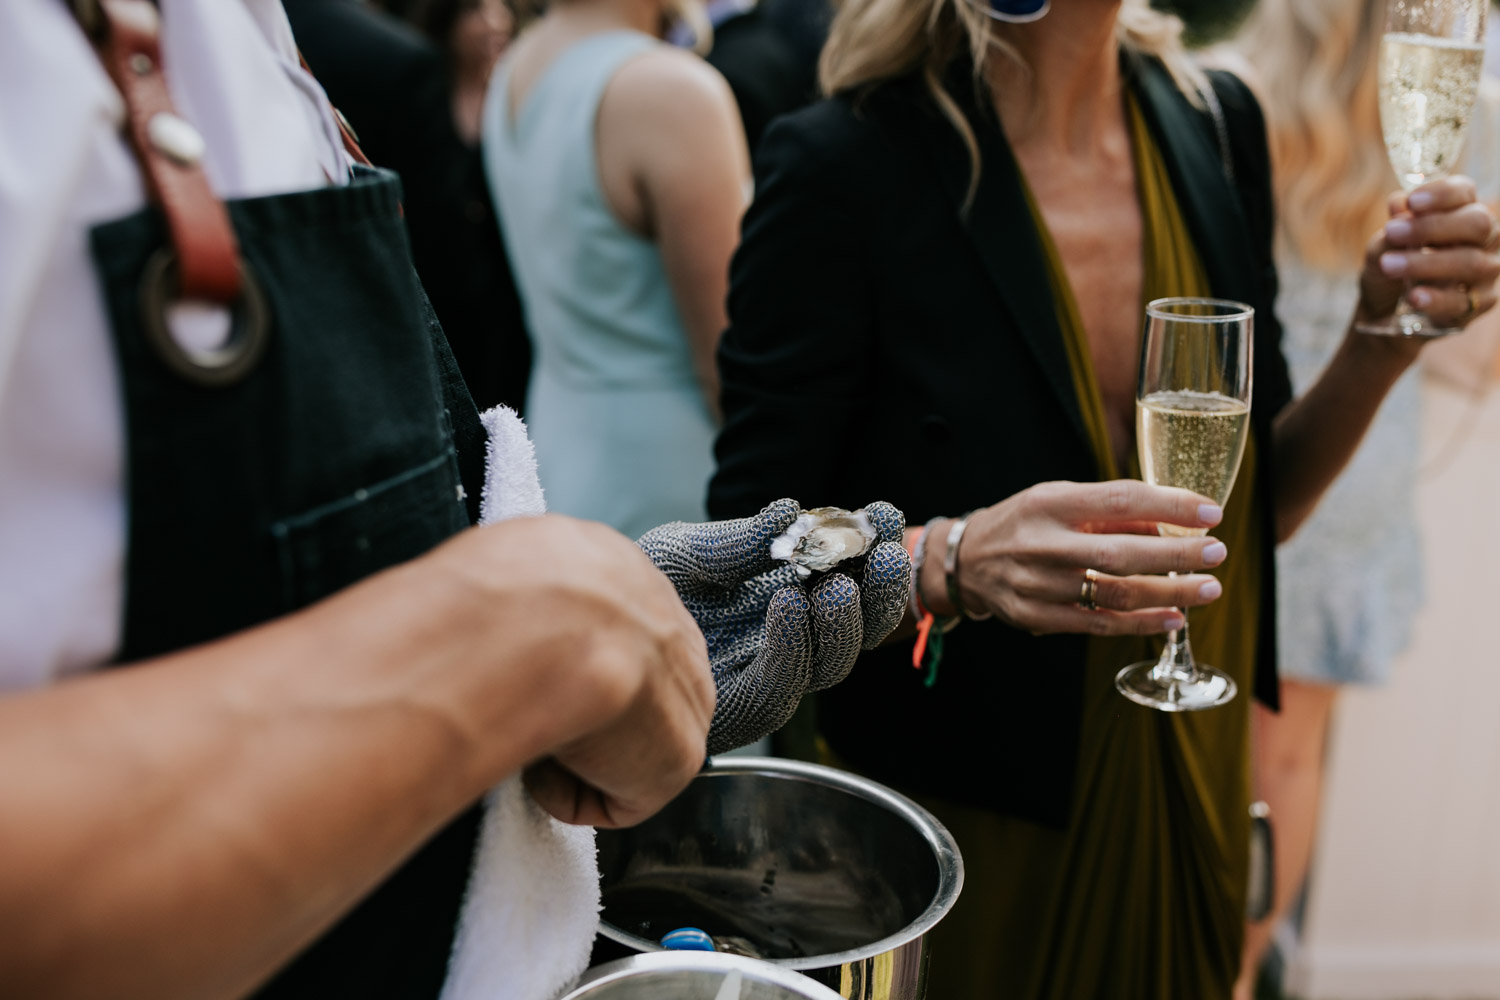 Shucking oysters is a great an alternative ideas for canapes during wedding cocktail hour